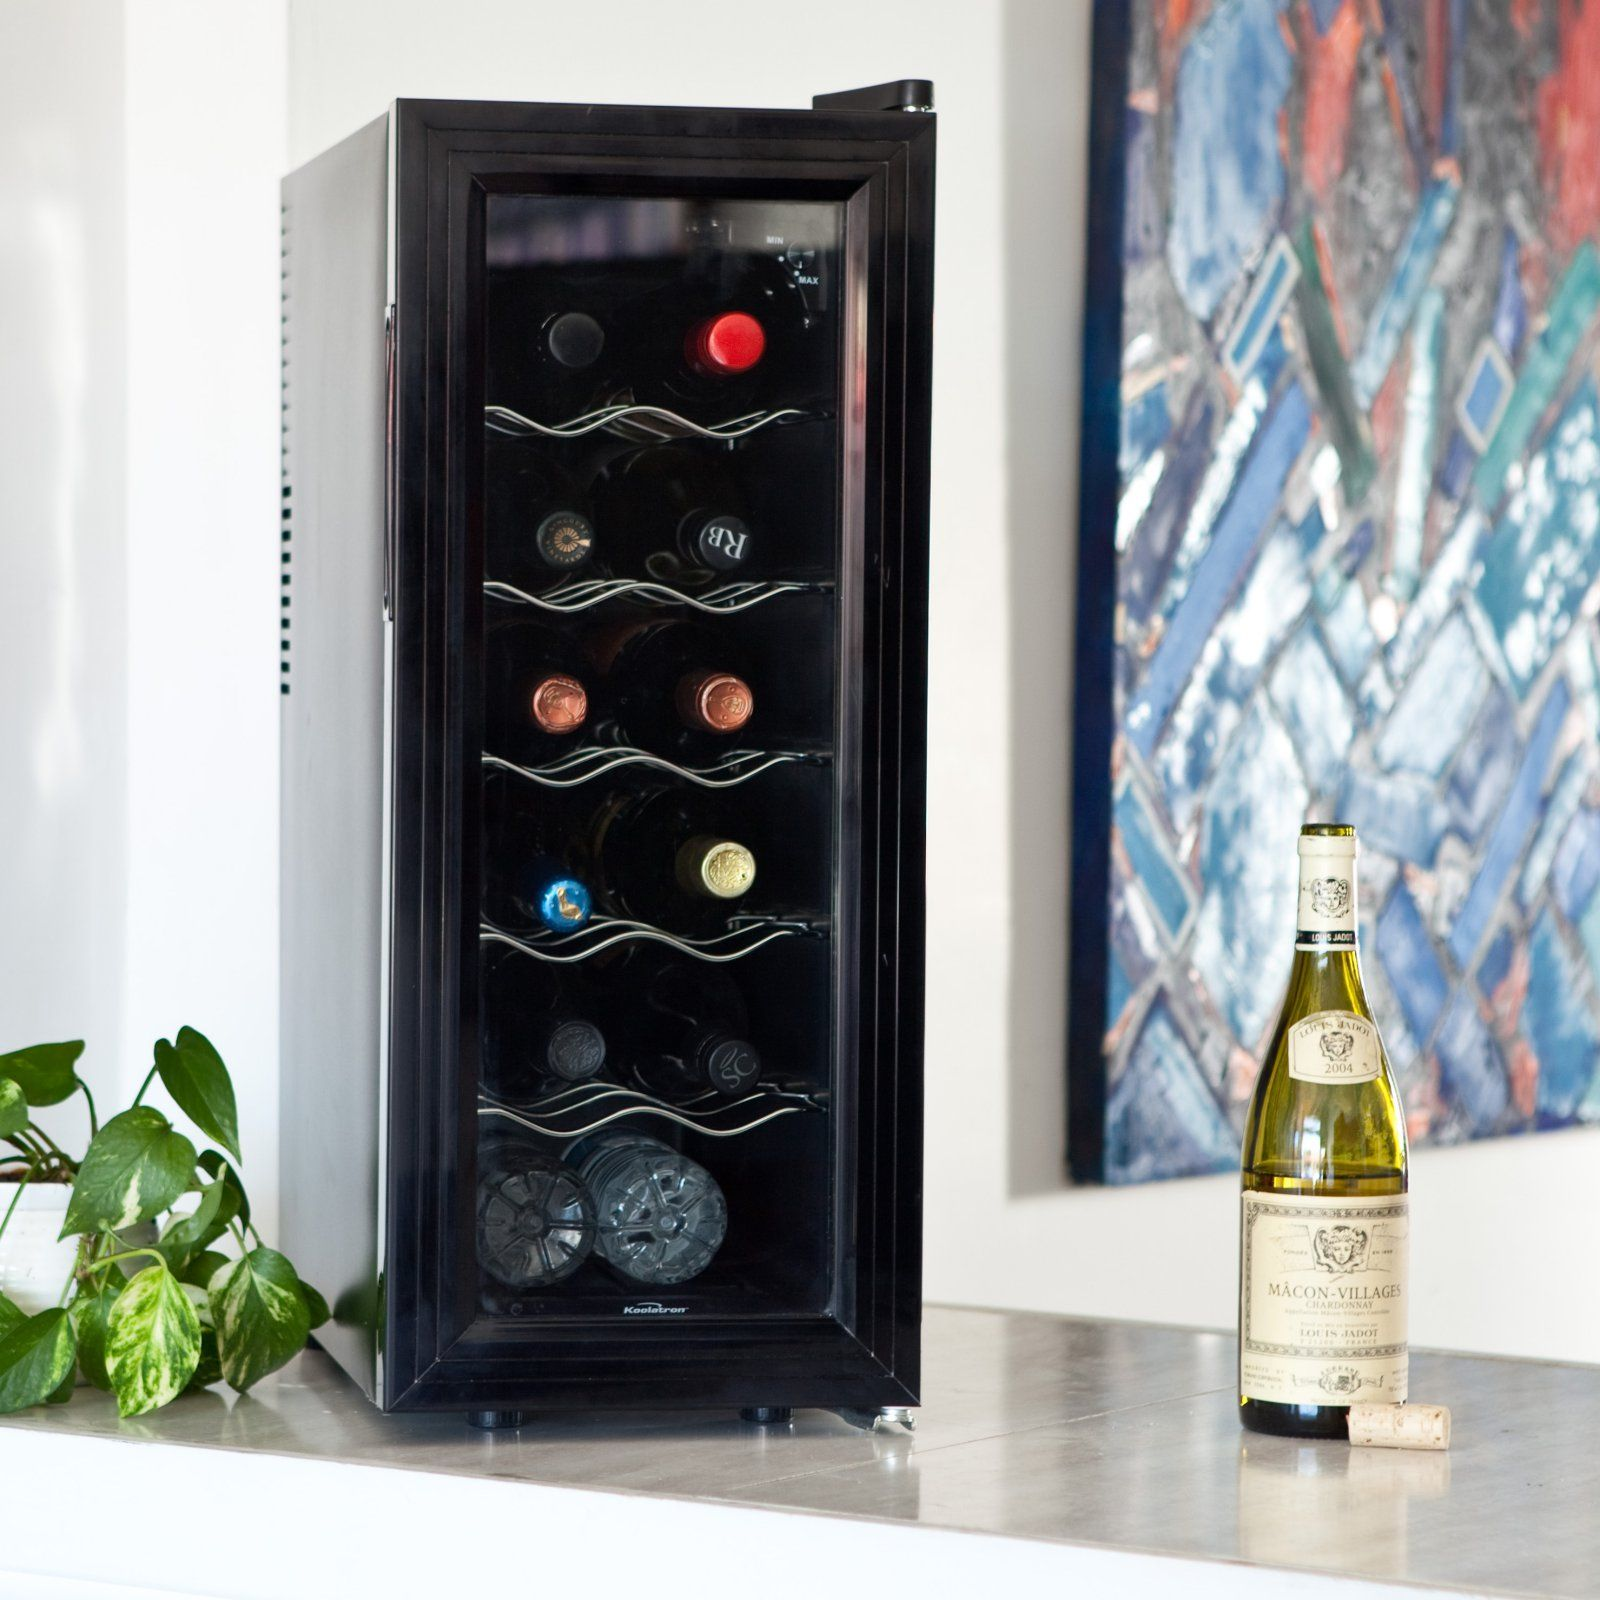 Koolatron Slim 12 Bottle Wine Cooler Wine Cooler Italian Wine Wine Bottle